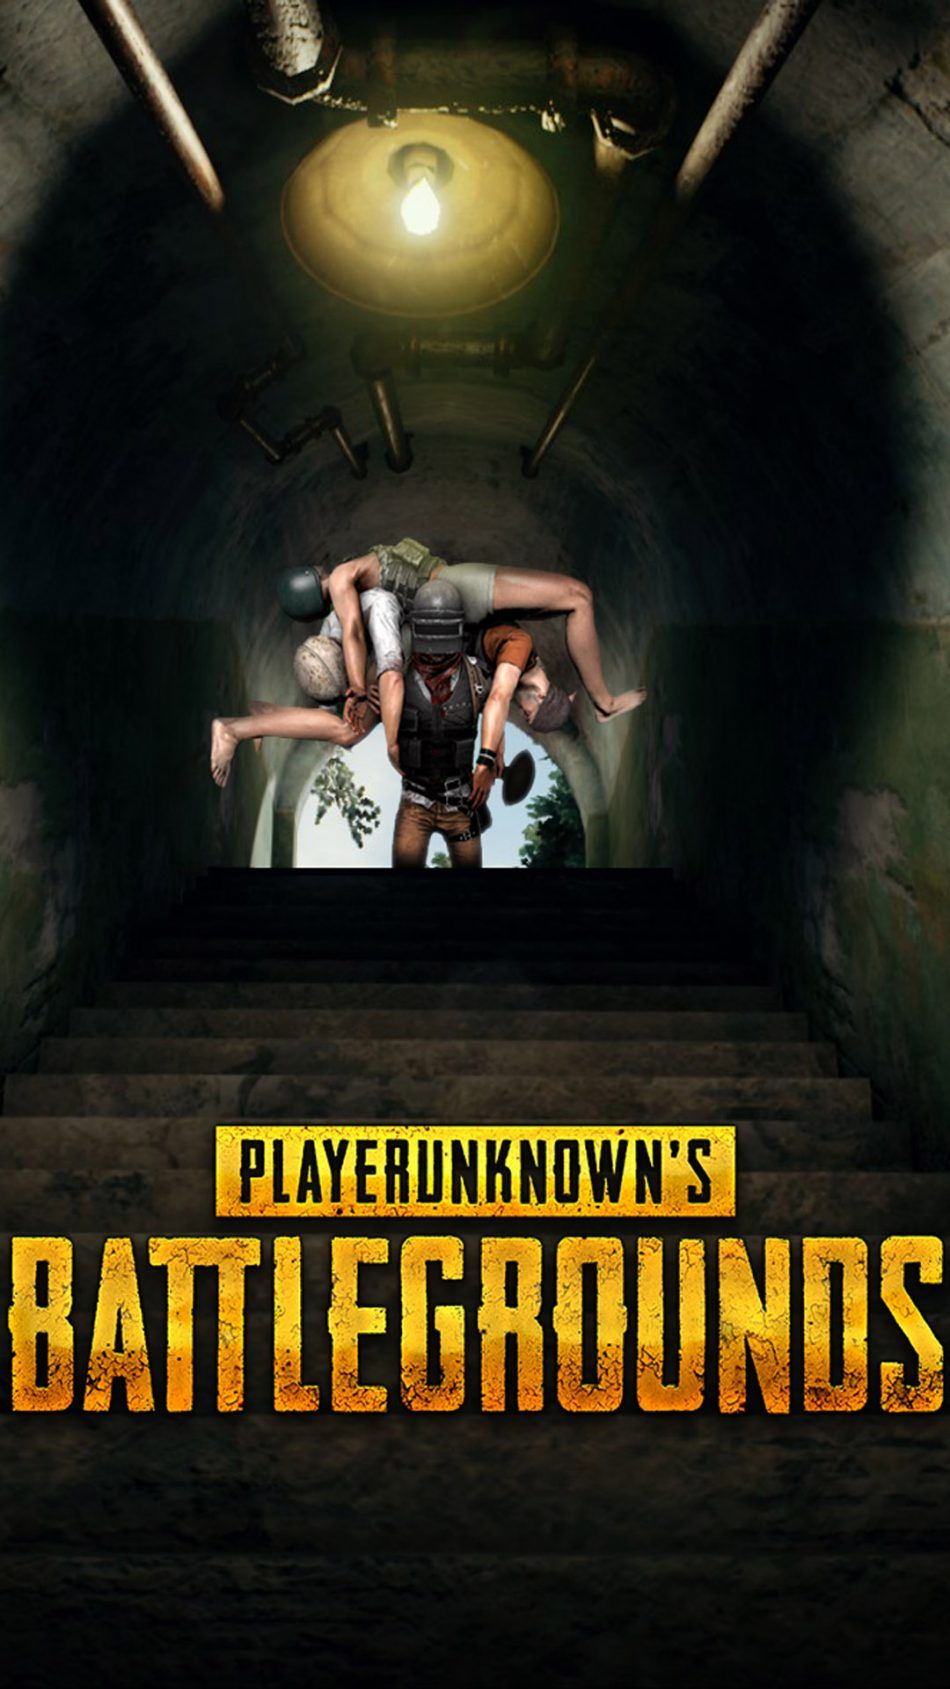 Saving Teammates Playerunknown S Battlegrounds Pubg Games Board